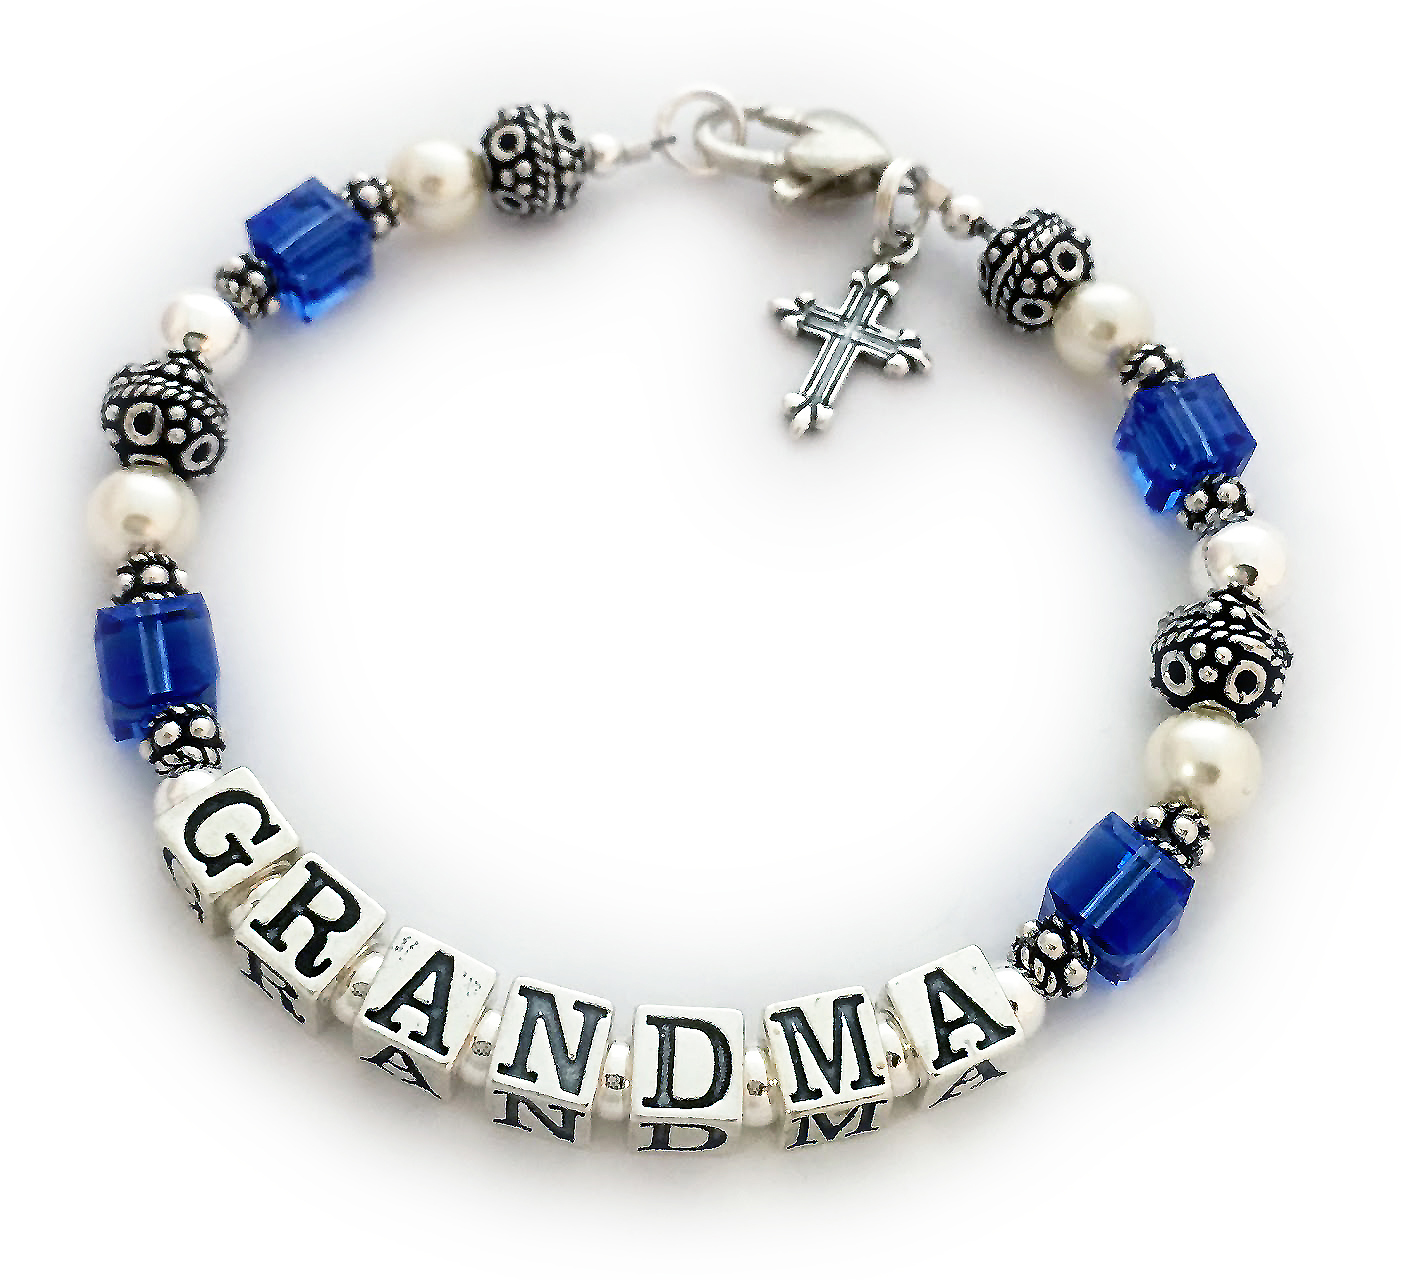 DBL-SS6-1	String Bracelet  Enter: GRANDMA/Sep  Grandma birthstone bracelet shown with an upgraded Heart Lobster clasp and they added a Fancy Cross charm. They picked Sapphire or September Birthstone cyrstals by Swarovski.